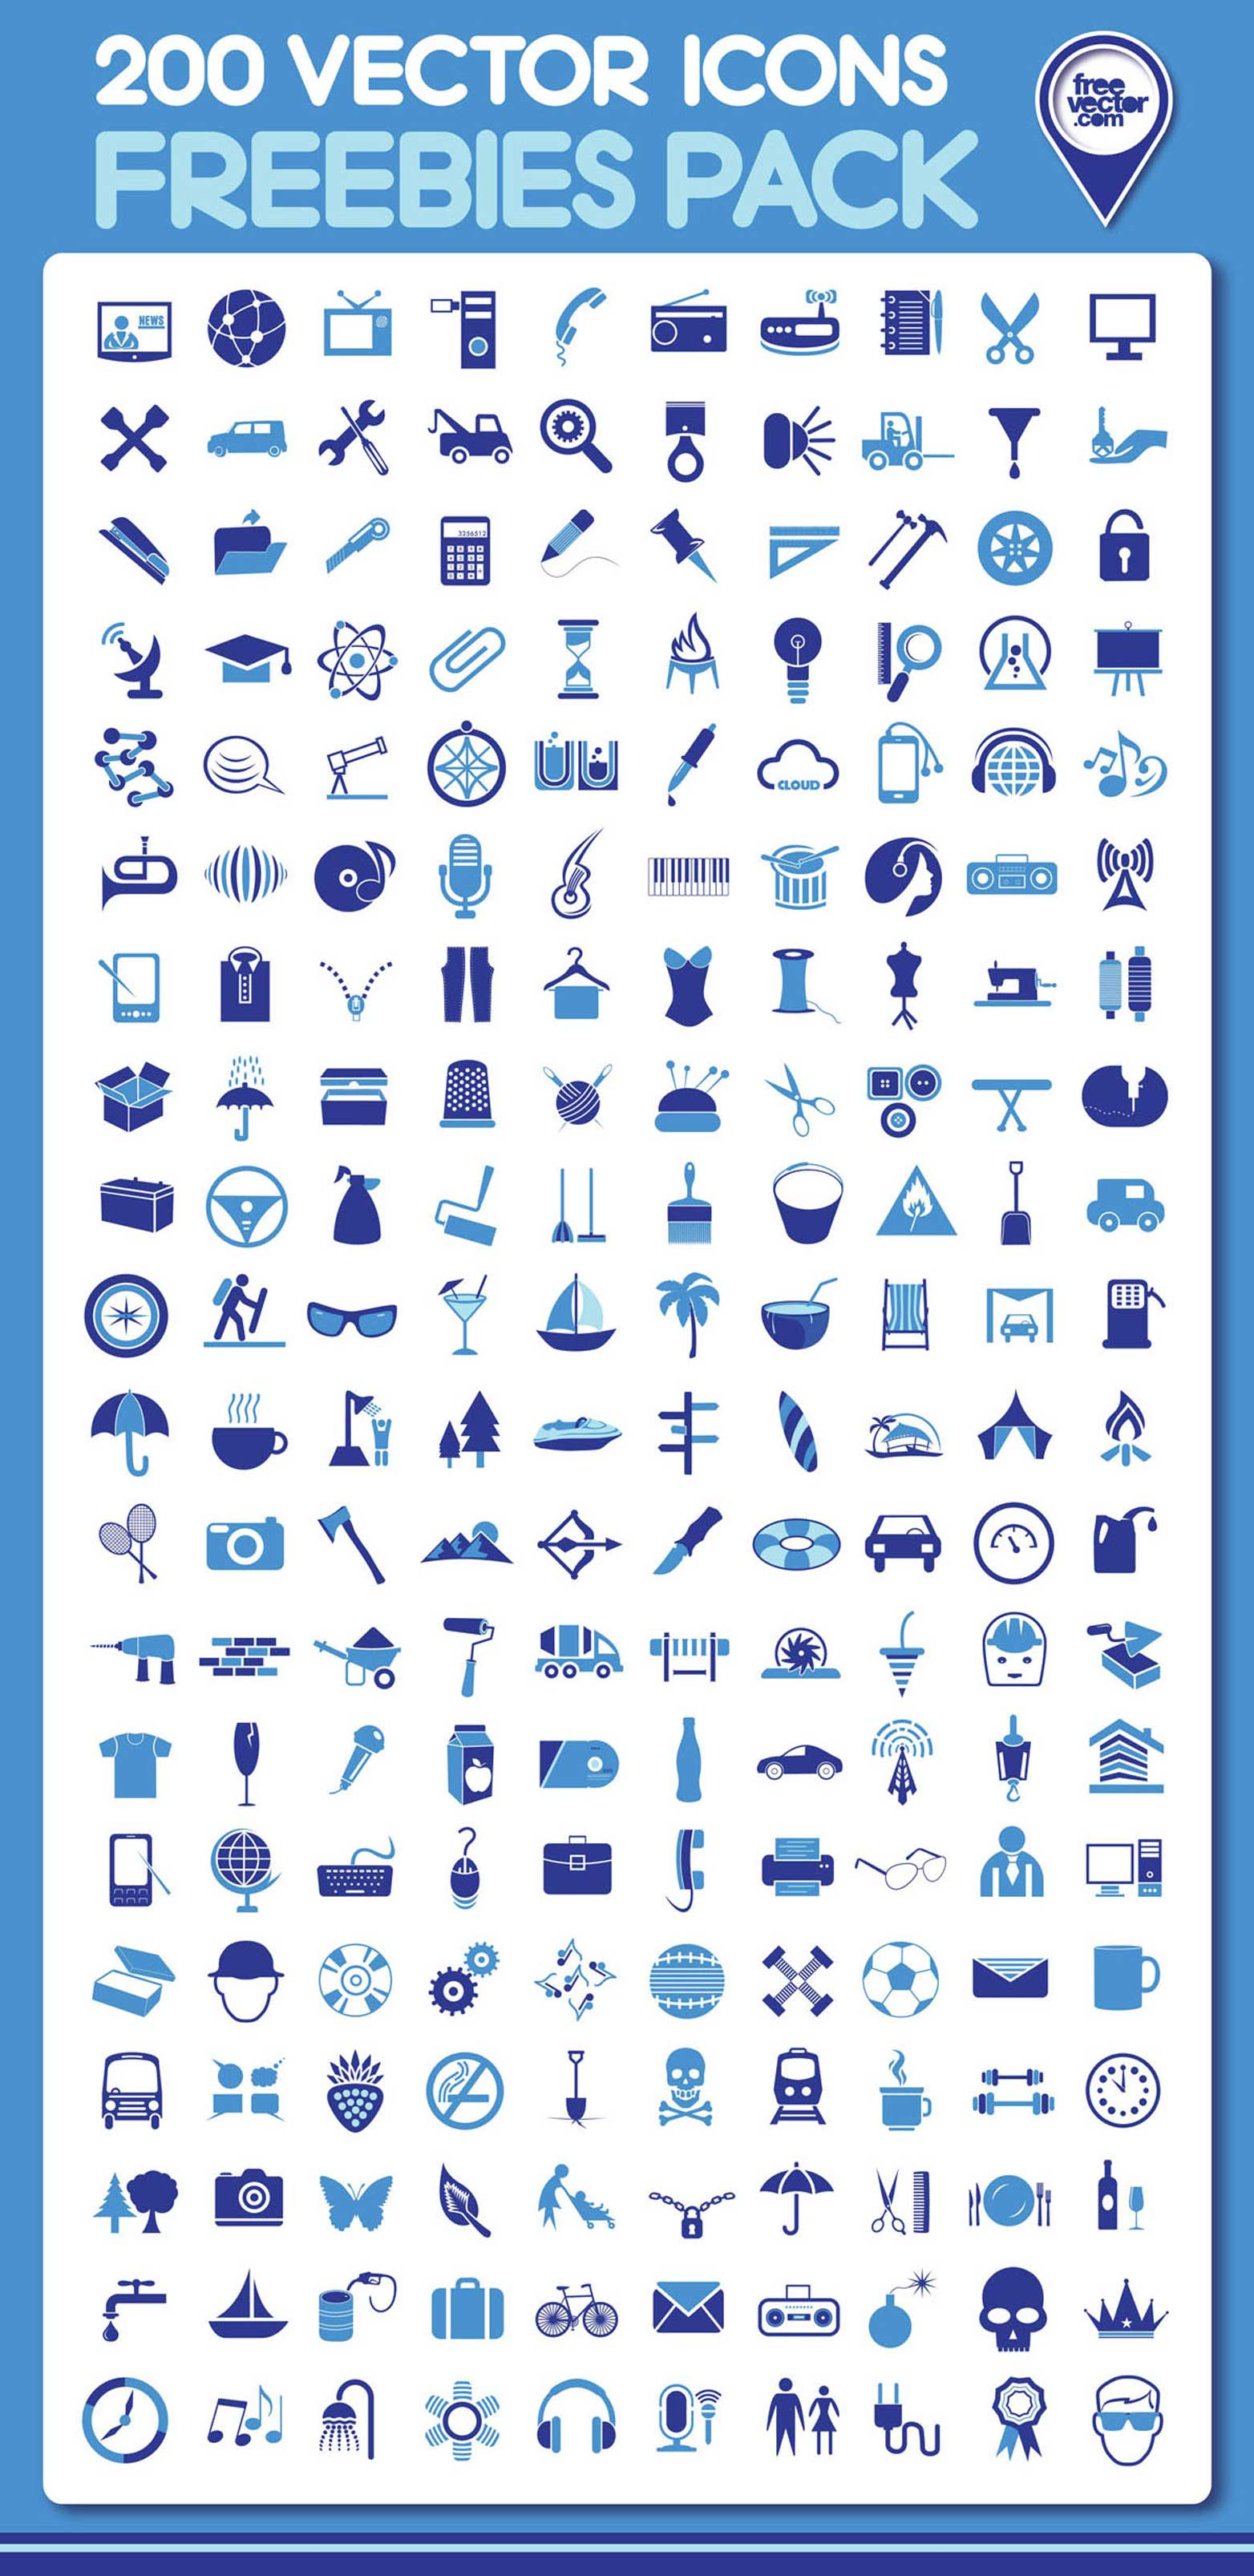 12 Download Icon Vector Images